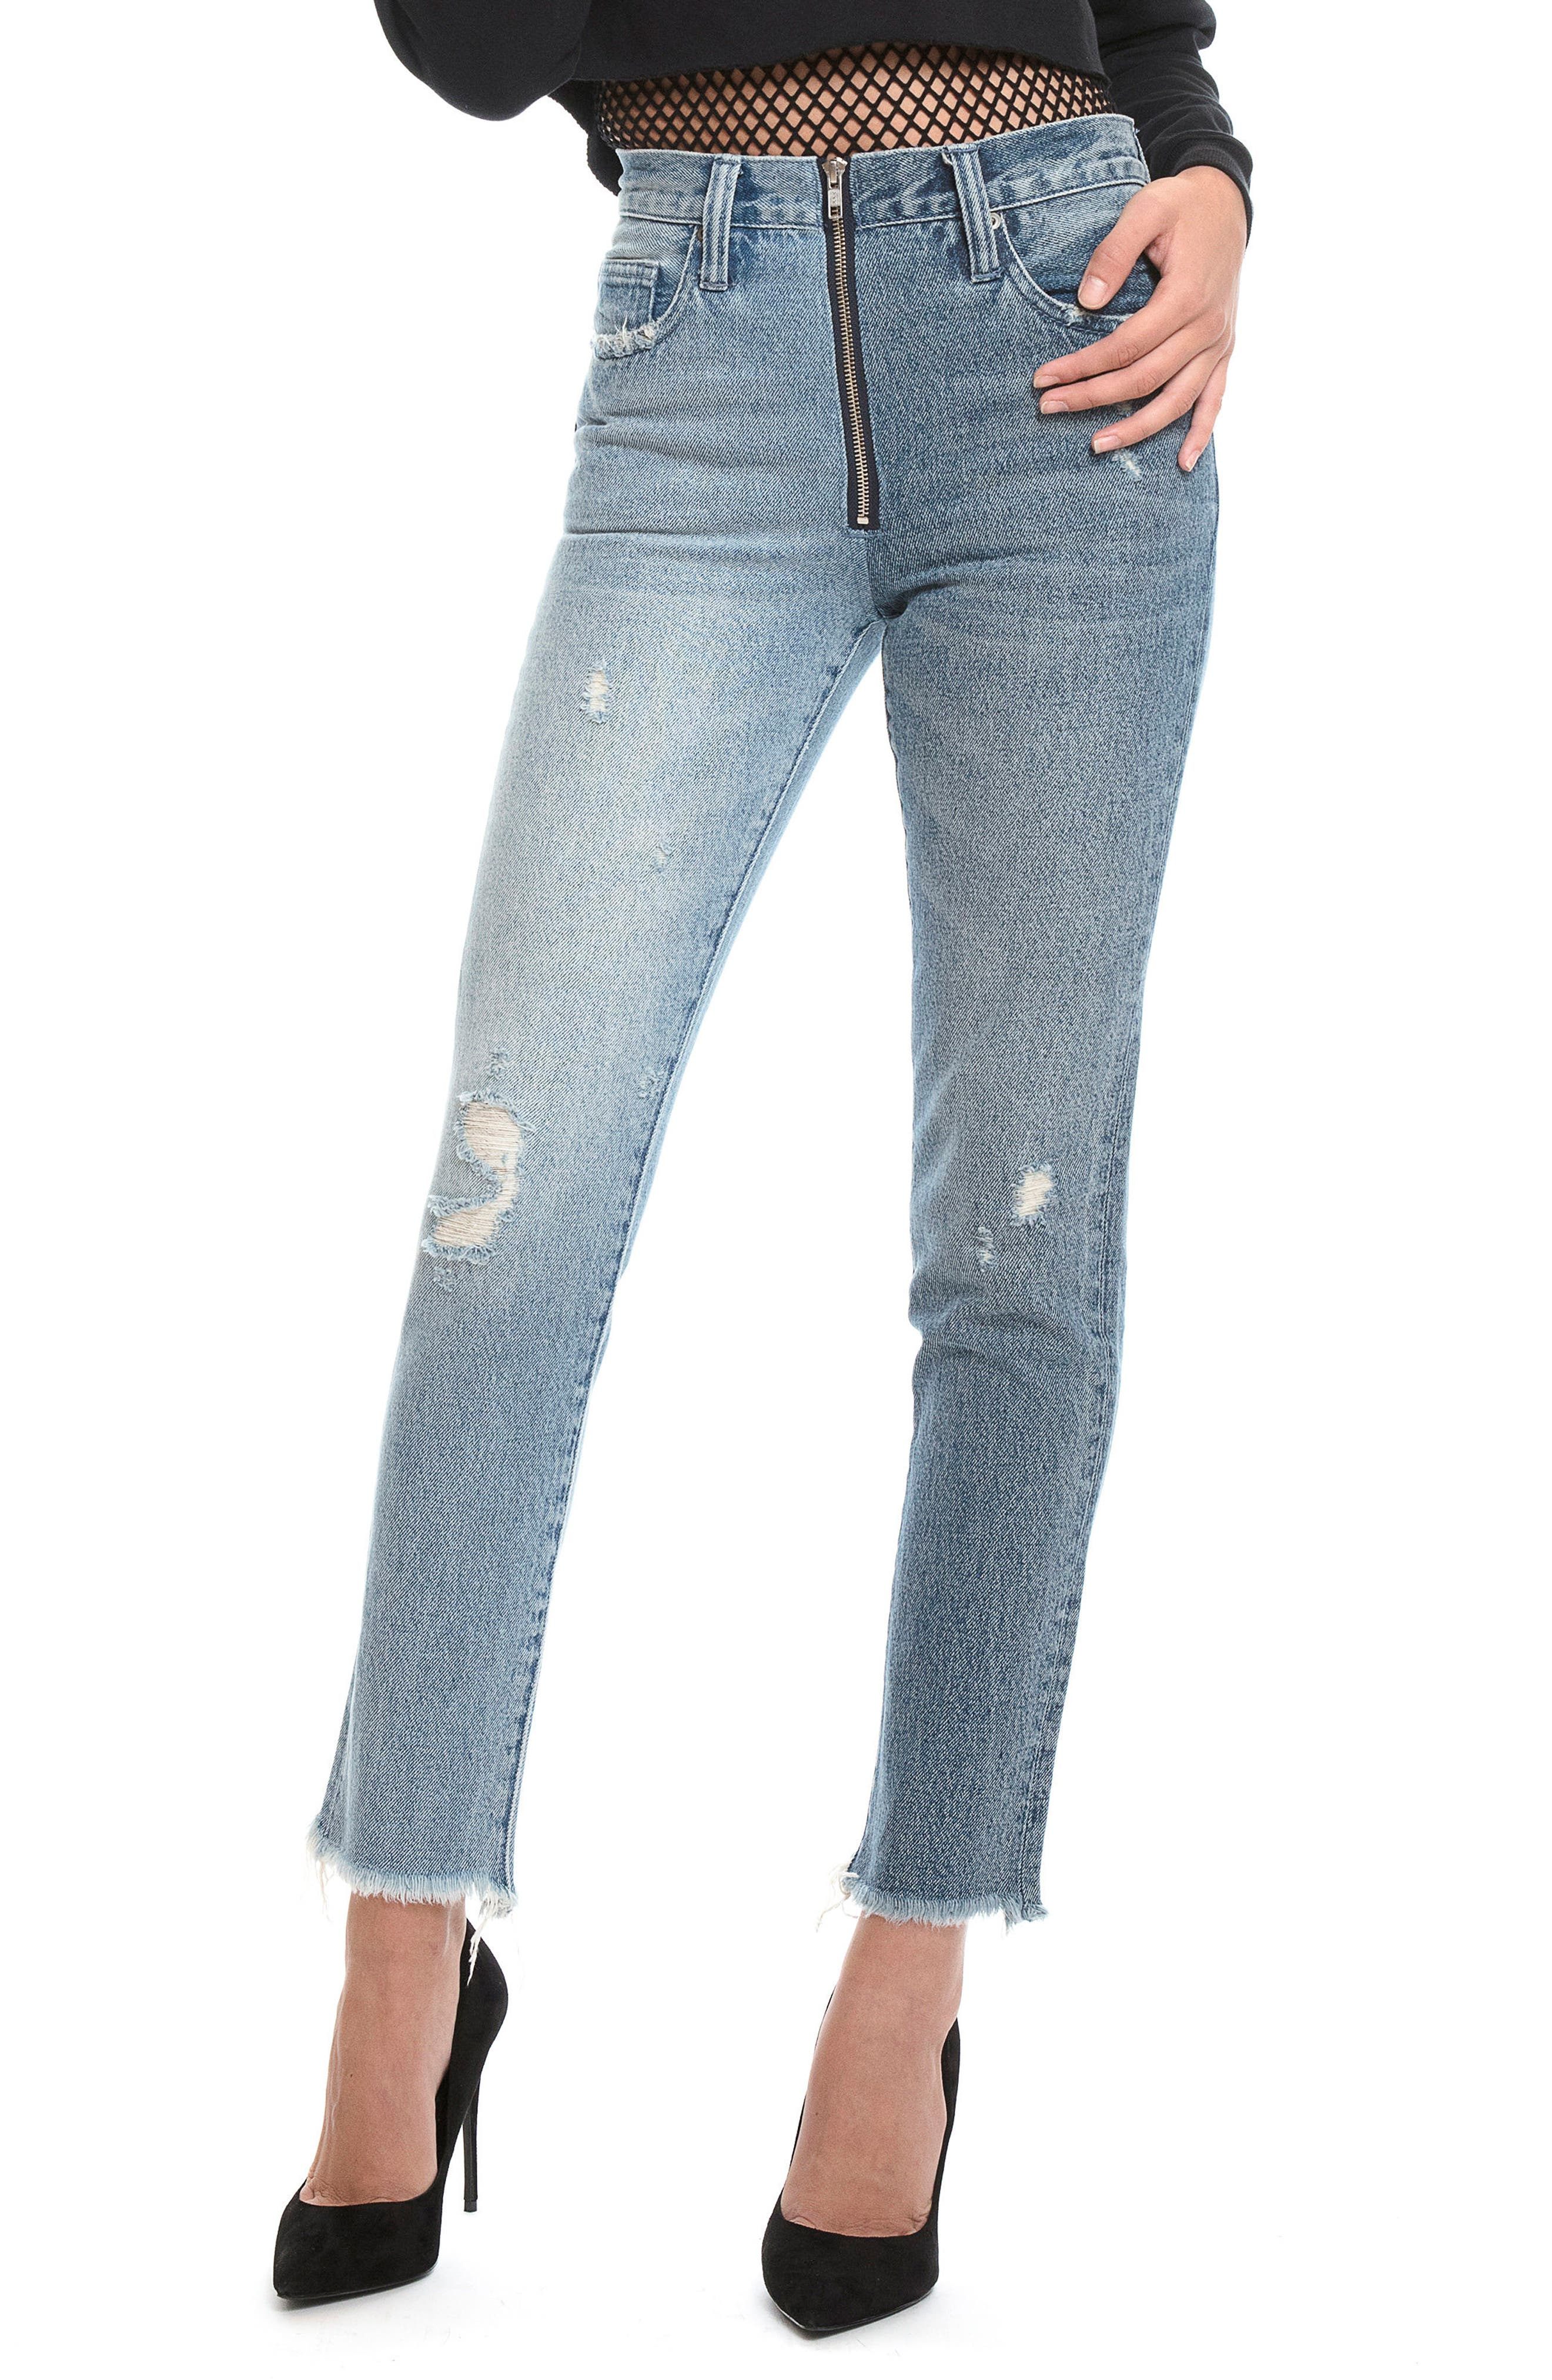 Chevelle Ankle Skinny Jeans,                             Main thumbnail 1, color,                             490